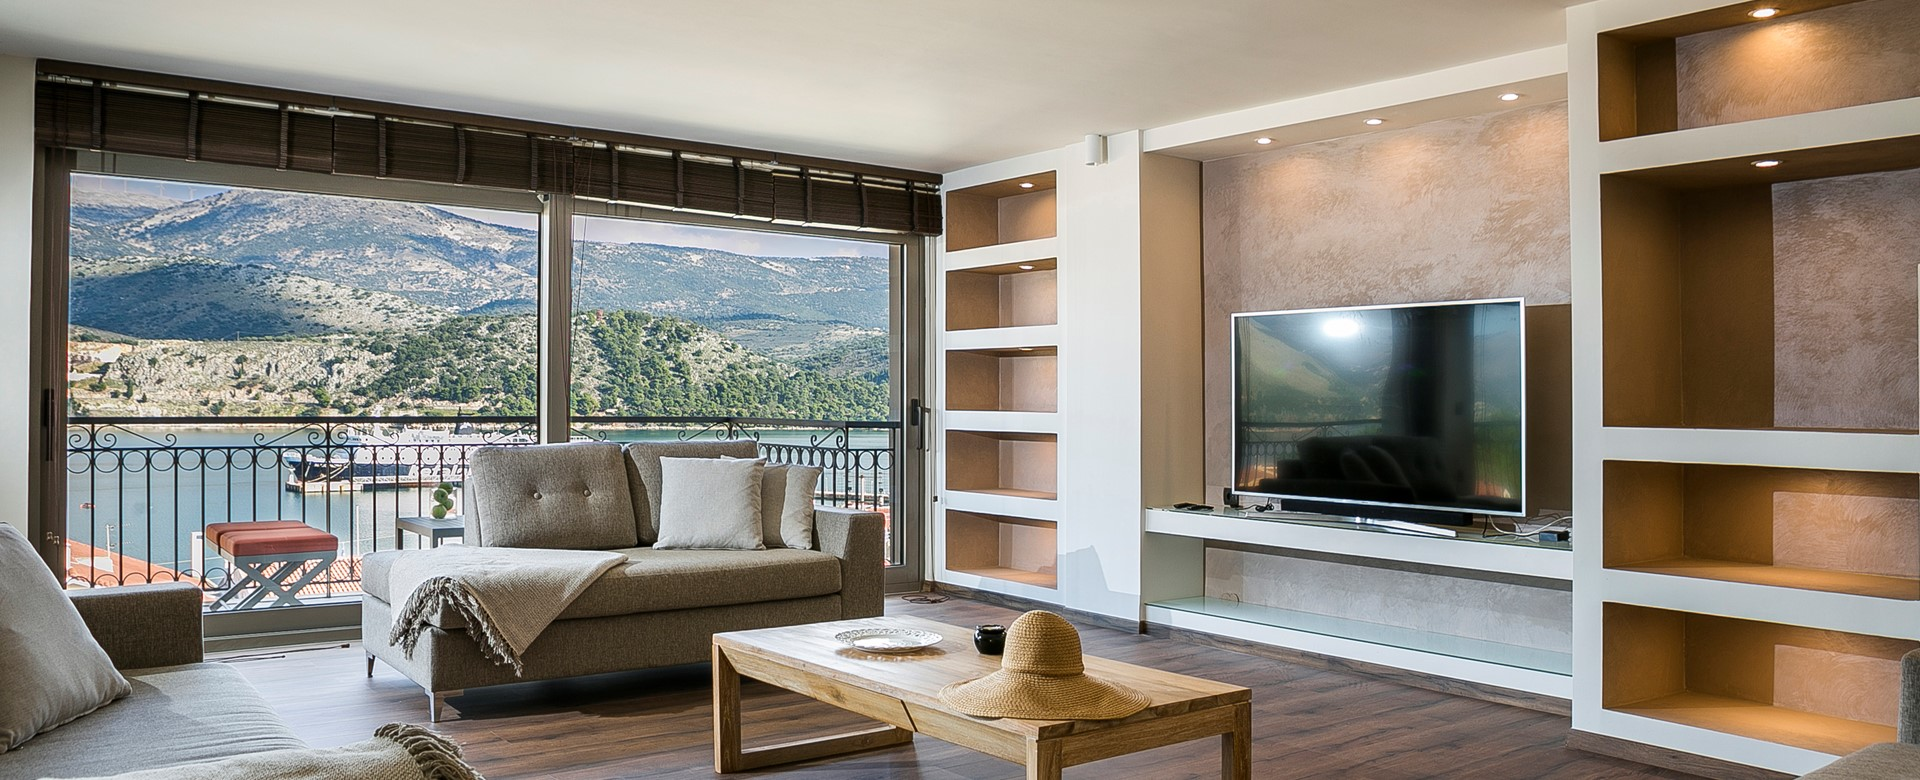 Modern, minimal, clean and clutter free family lounge space in Marina Penthouse Apartment, Argostoli, Kefalonia, Greek Islands